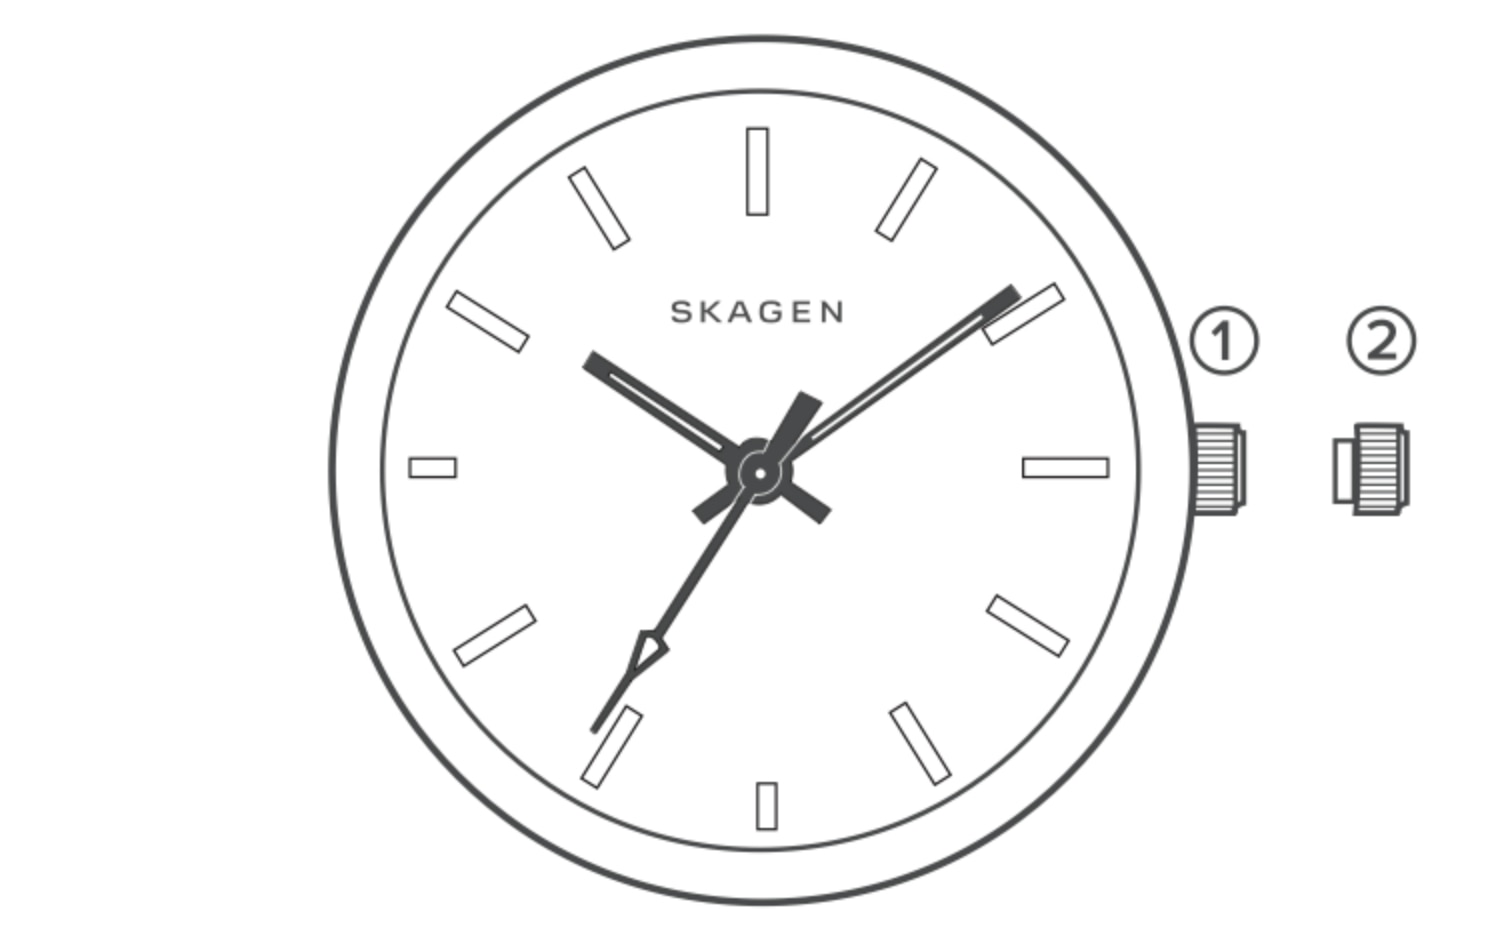 line art of the dial for a solar powered watch, identifying the parts of the watch.